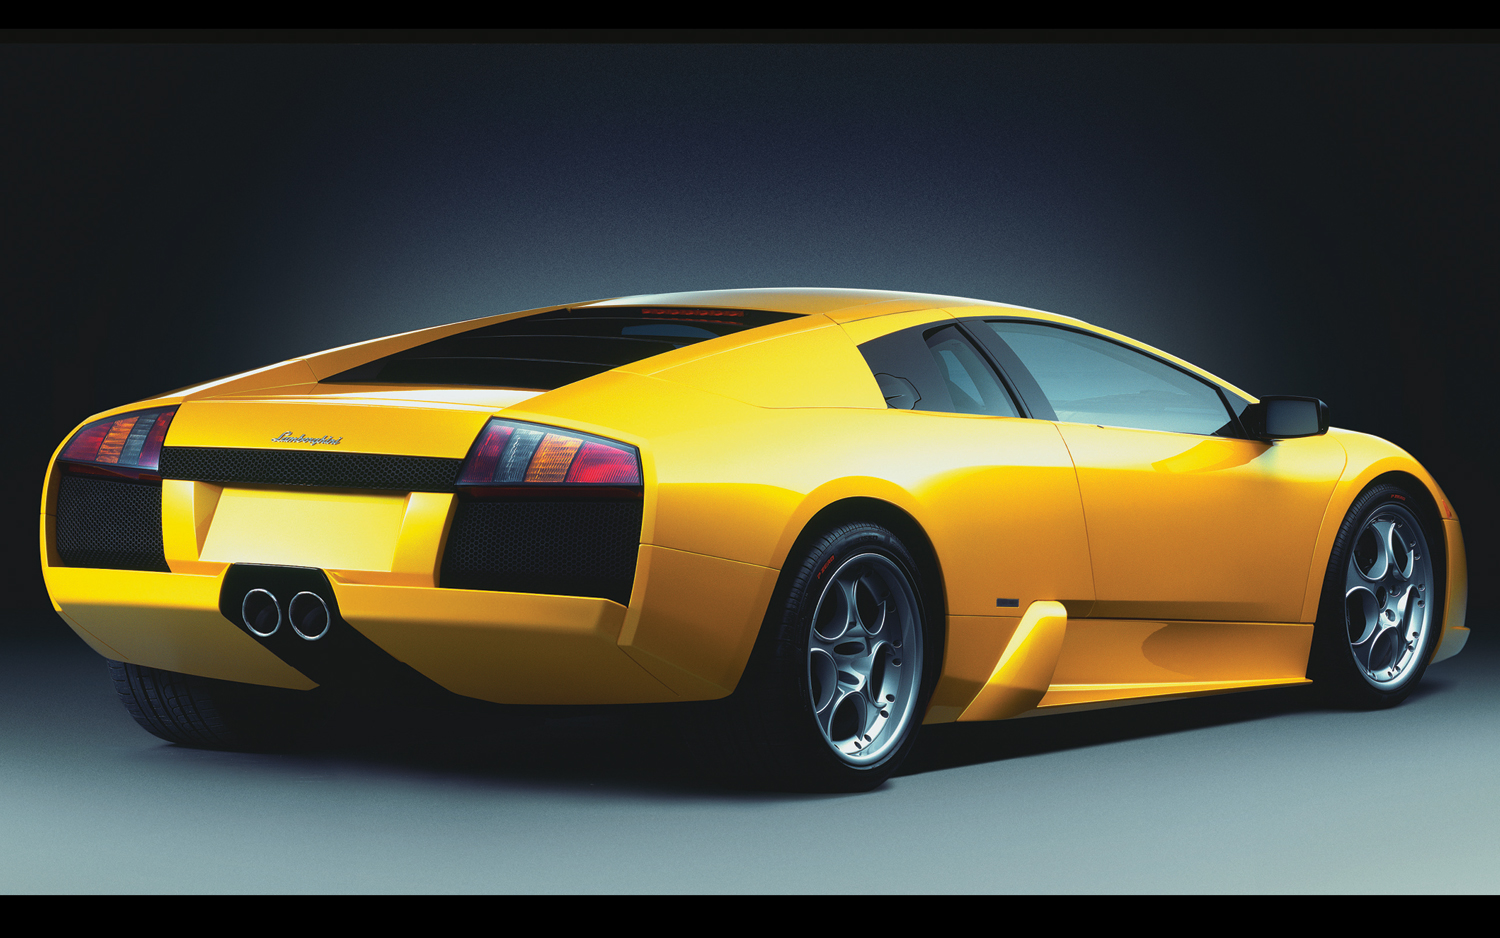 Amazing Lamborghini Murciélago Pictures & Backgrounds